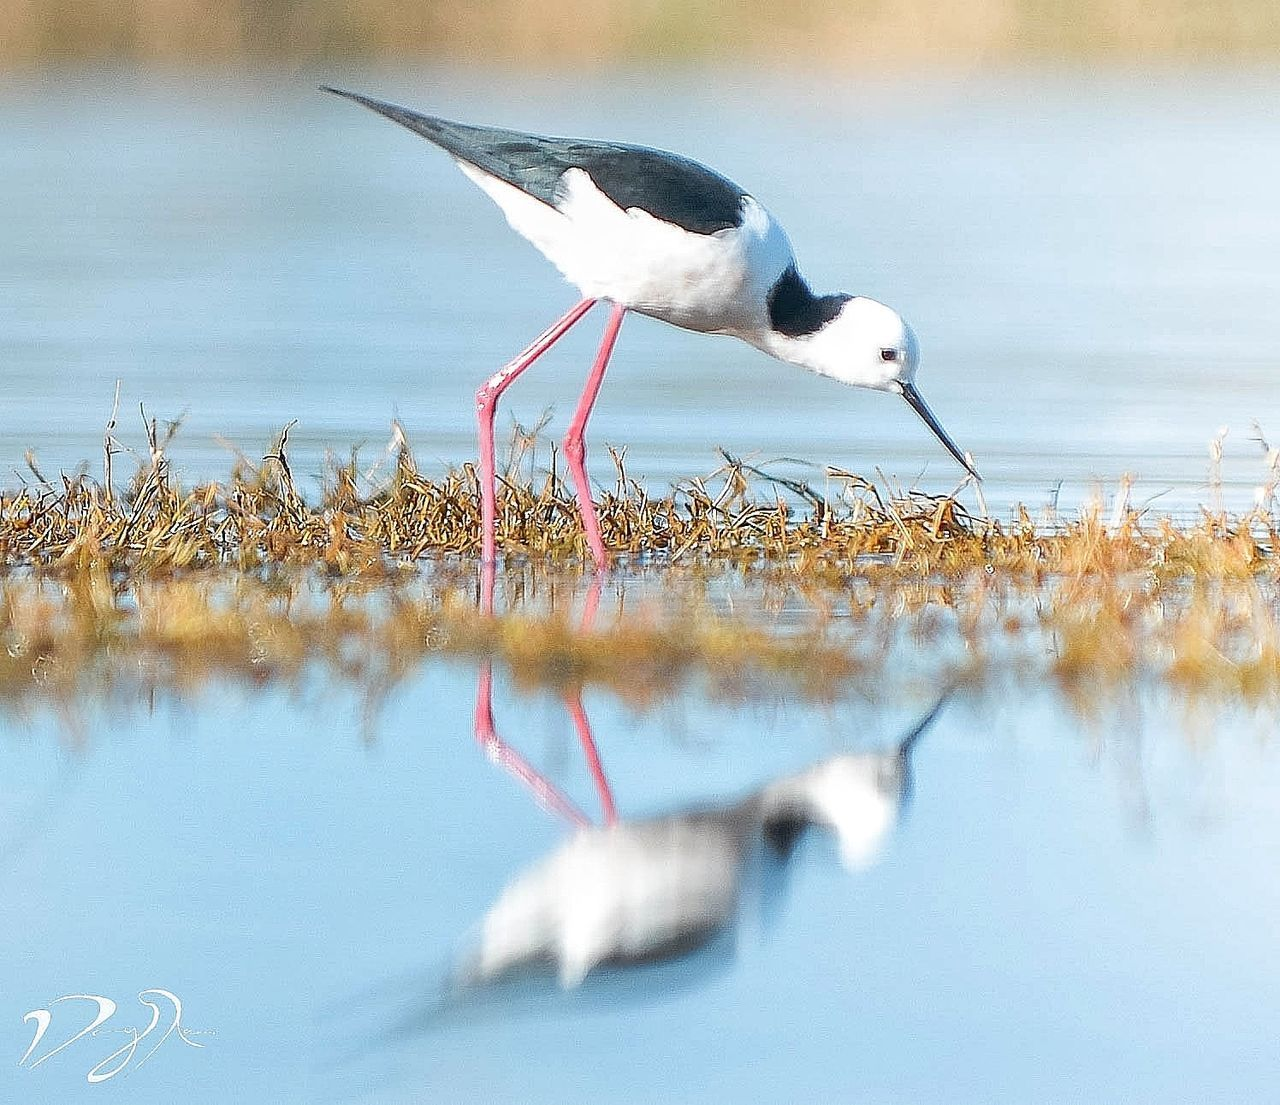 A black winged stilt, found in Western Australia. Bird Animal Wildlife Animals In The Wild Reflection Water Lake Animal Themes Nature Day No People Outdoors Travel Destinations Nikonphotography Bird Photography Birds_collection Birdwatching Birds Of EyeEm  Perth Australia Wildlife Wildlife & Nature Wildlife Photography Waterfront Animals In The Wild Wild Animal